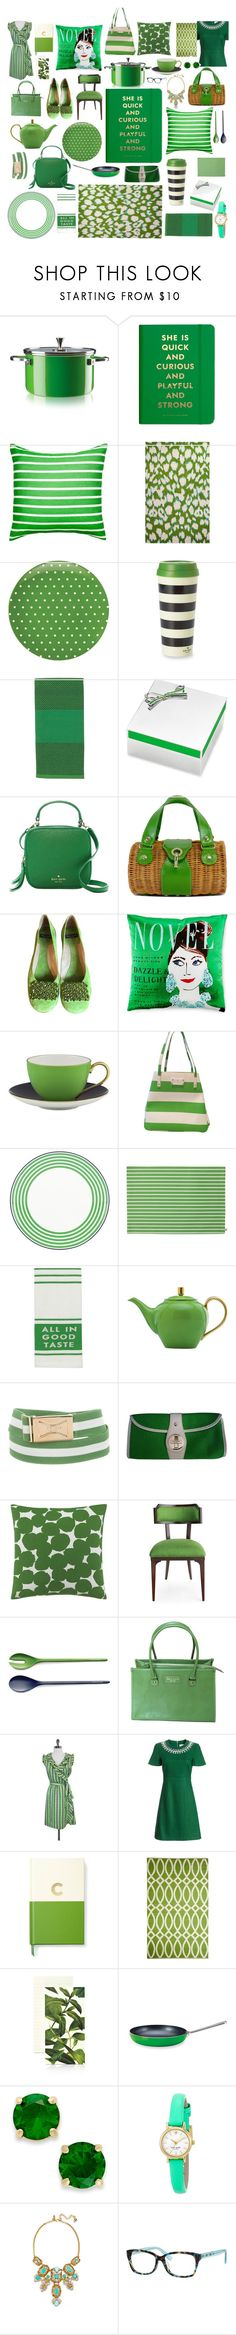 """""""Kate Spade Envy!"""" by tennnischik ❤ liked on Polyvore featuring interior, interiors, interior design, home, home decor, interior decorating, Kate Spade, GREEN, katespade and greenday"""